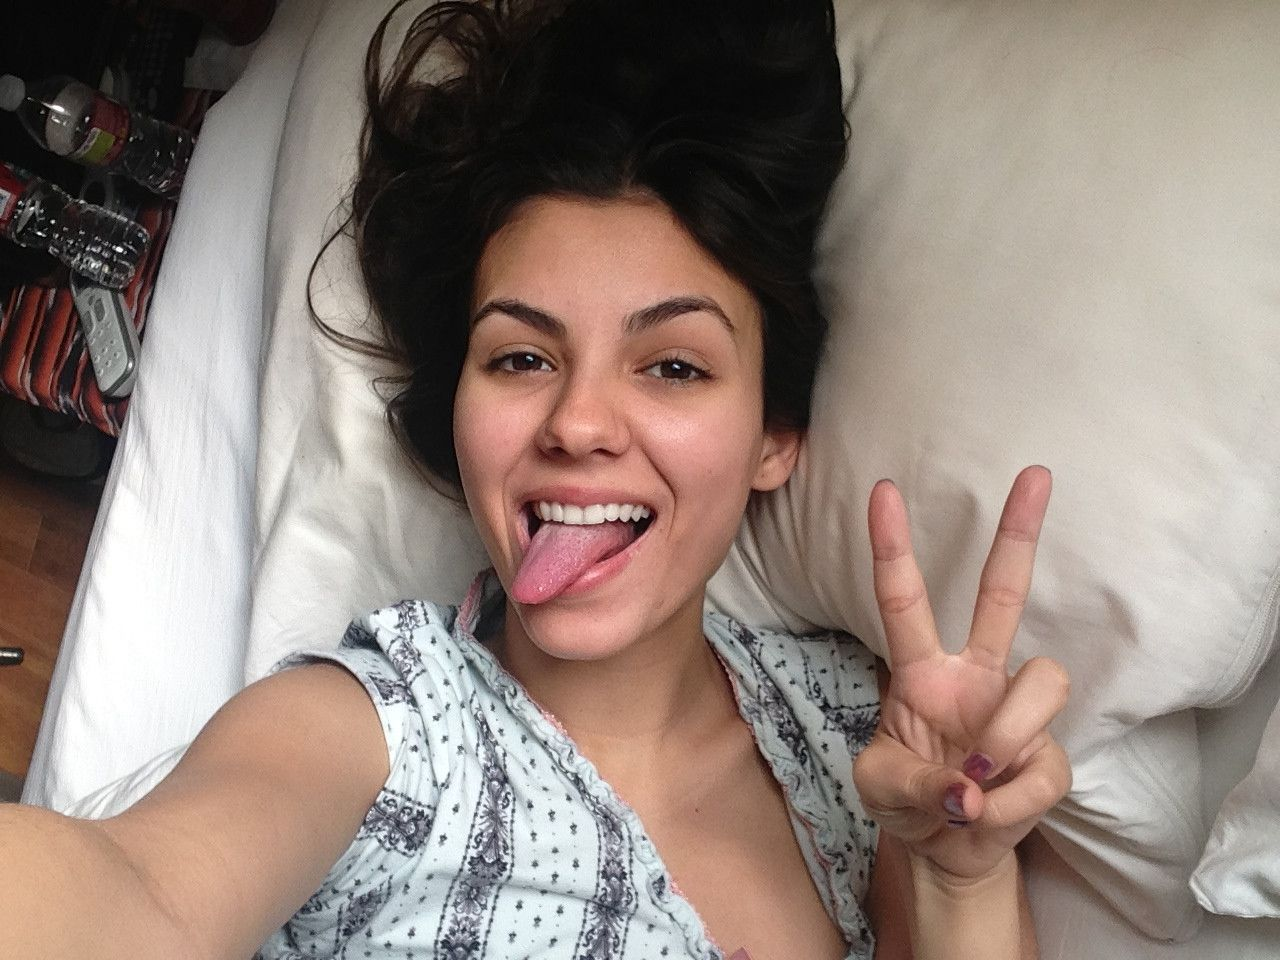 sexy victoria justice sticking out her tongue in hot selfie while laying in bed